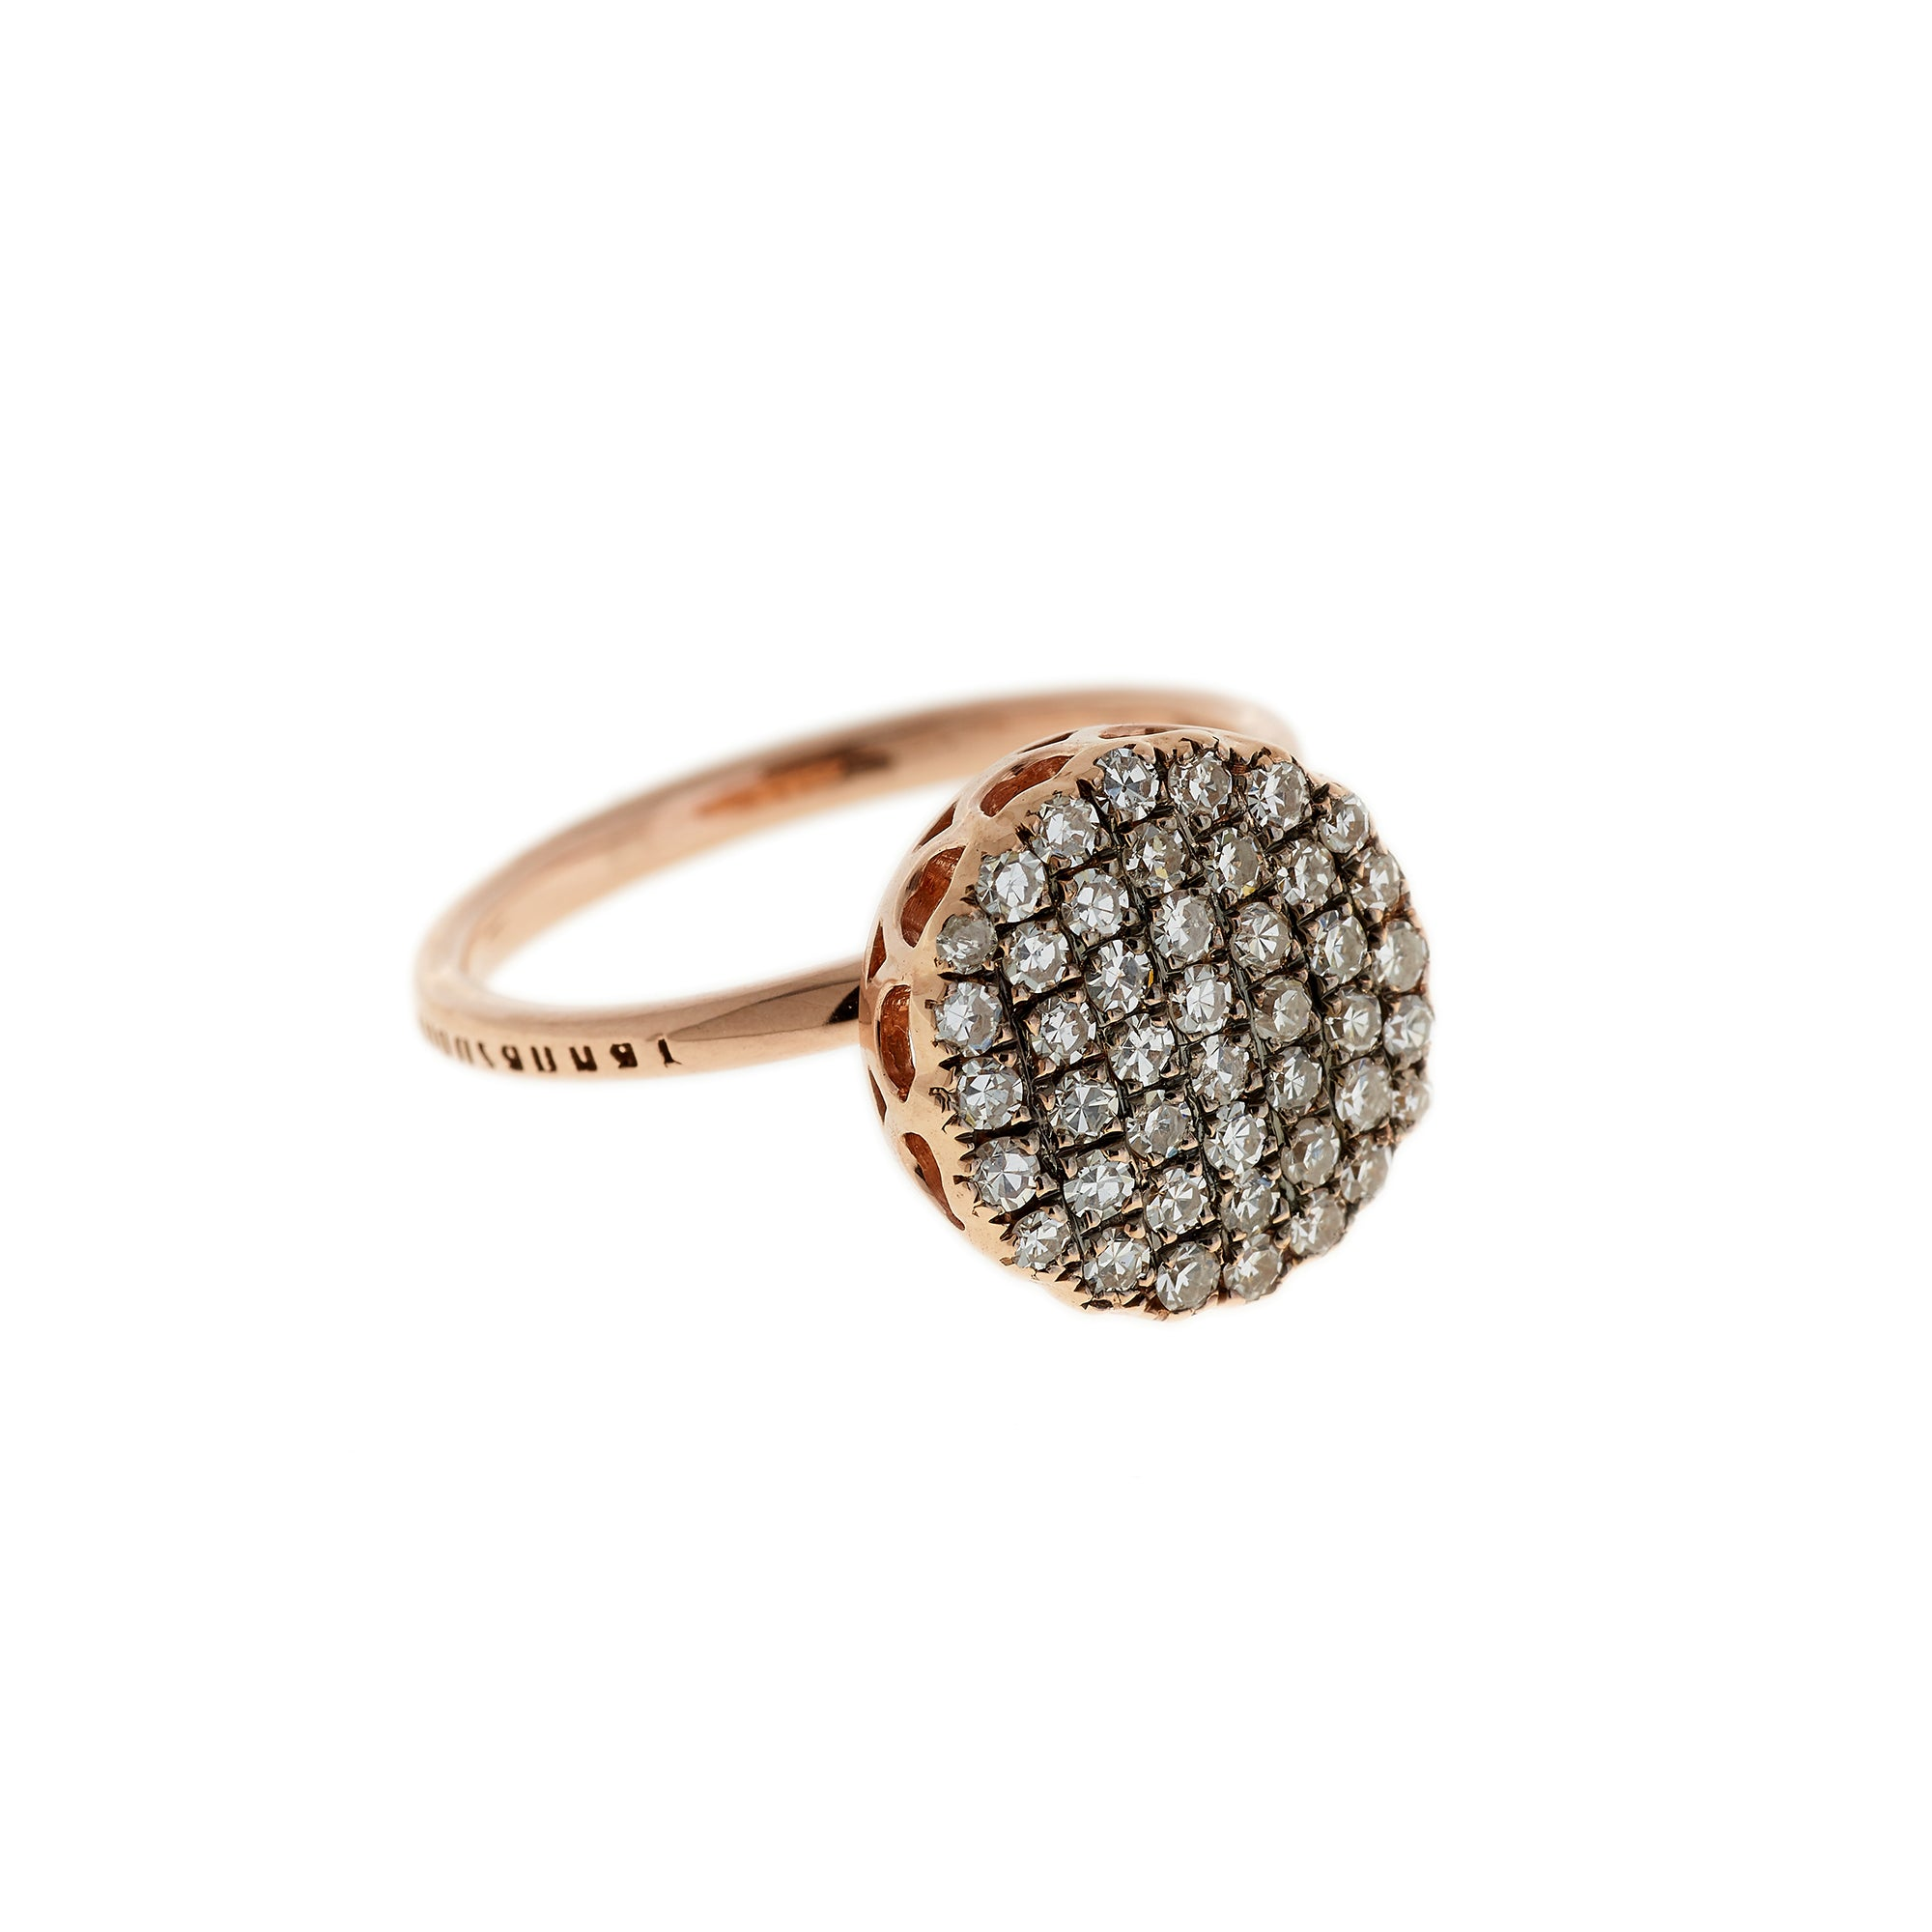 Diamond Ring by Selim Mouzannar for Broken English Jewelry